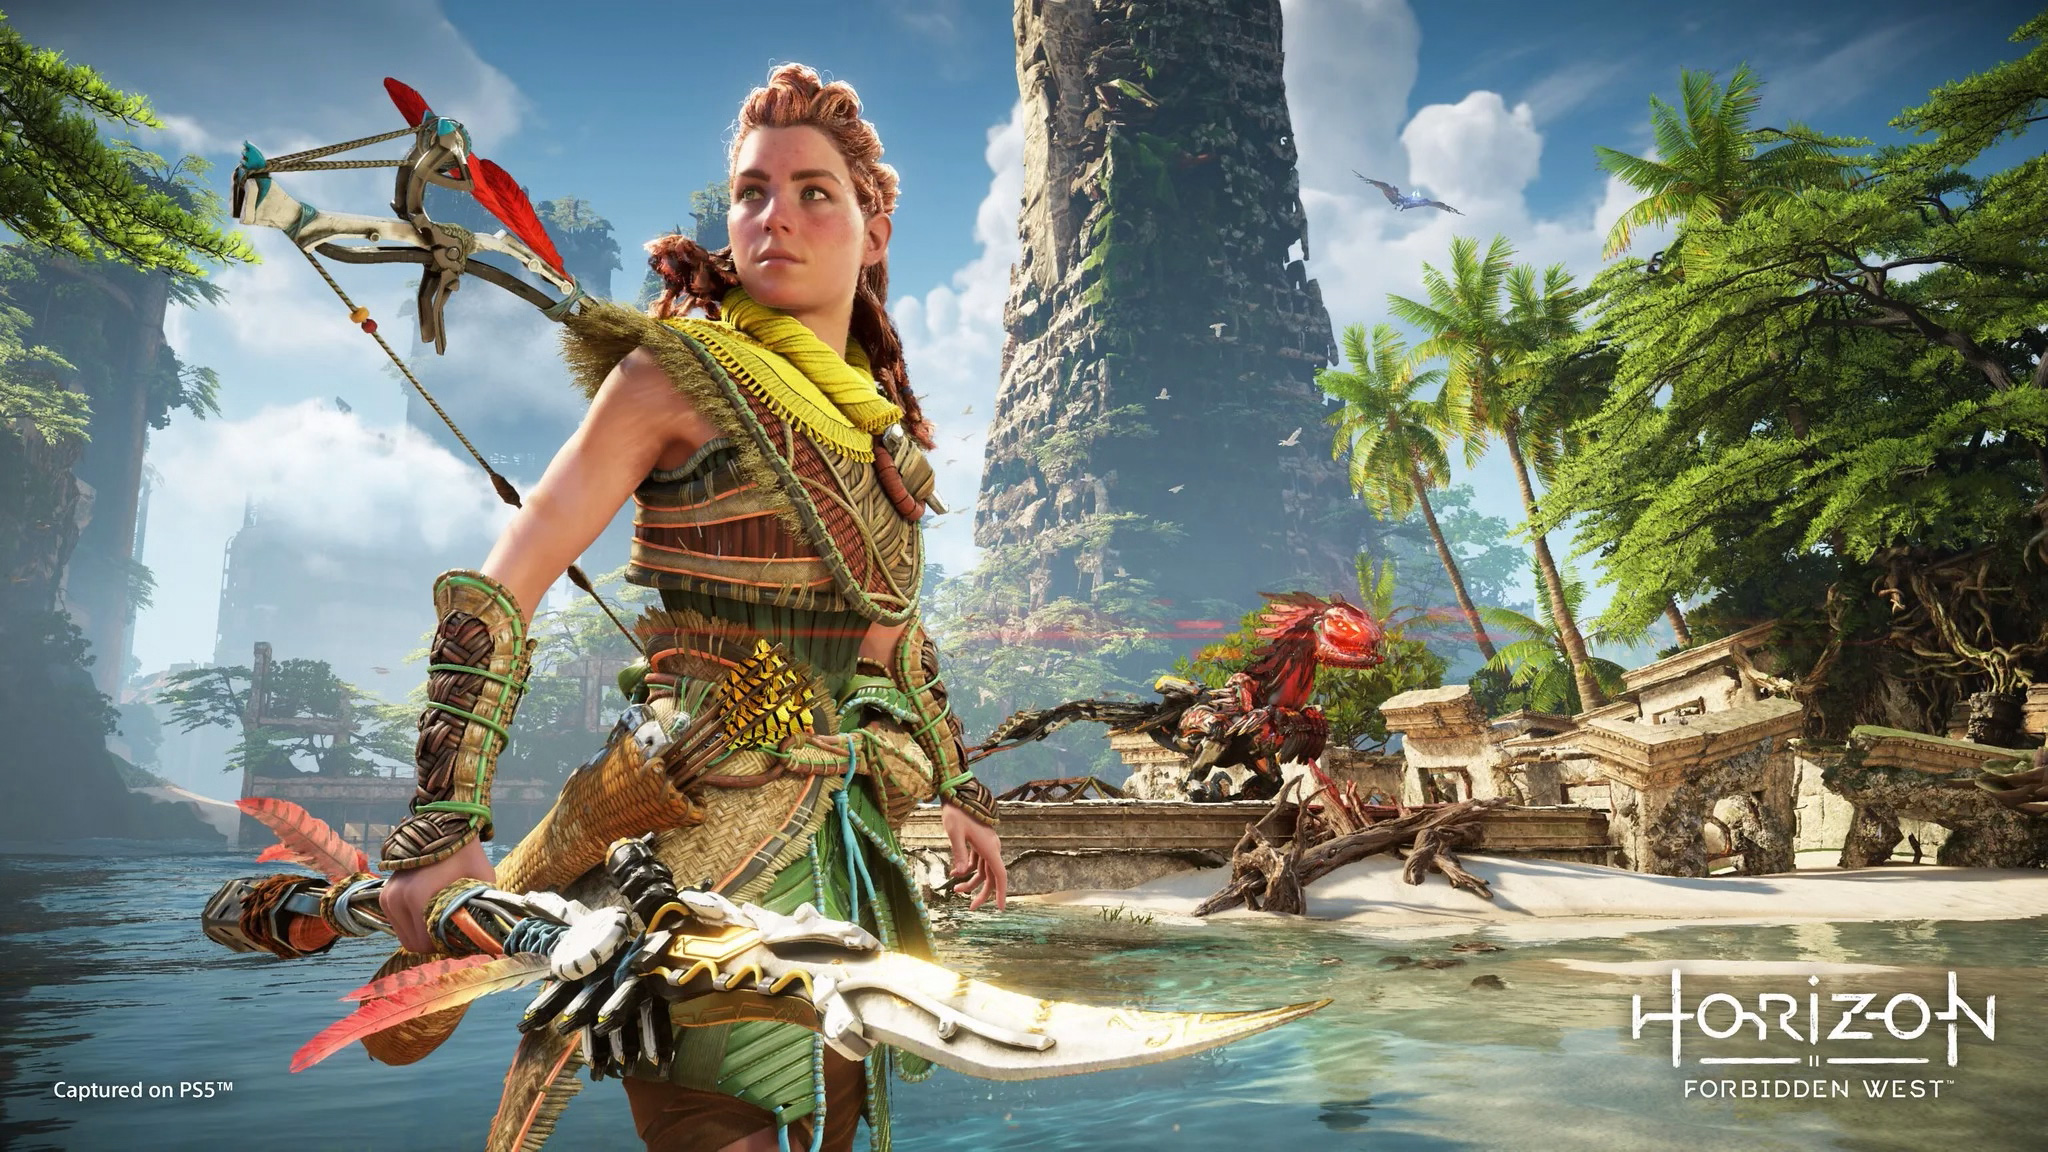 Aloy standing on a beach holding a spear looking into the distance while a Machine prowls in the background in Horizon Forbidden West